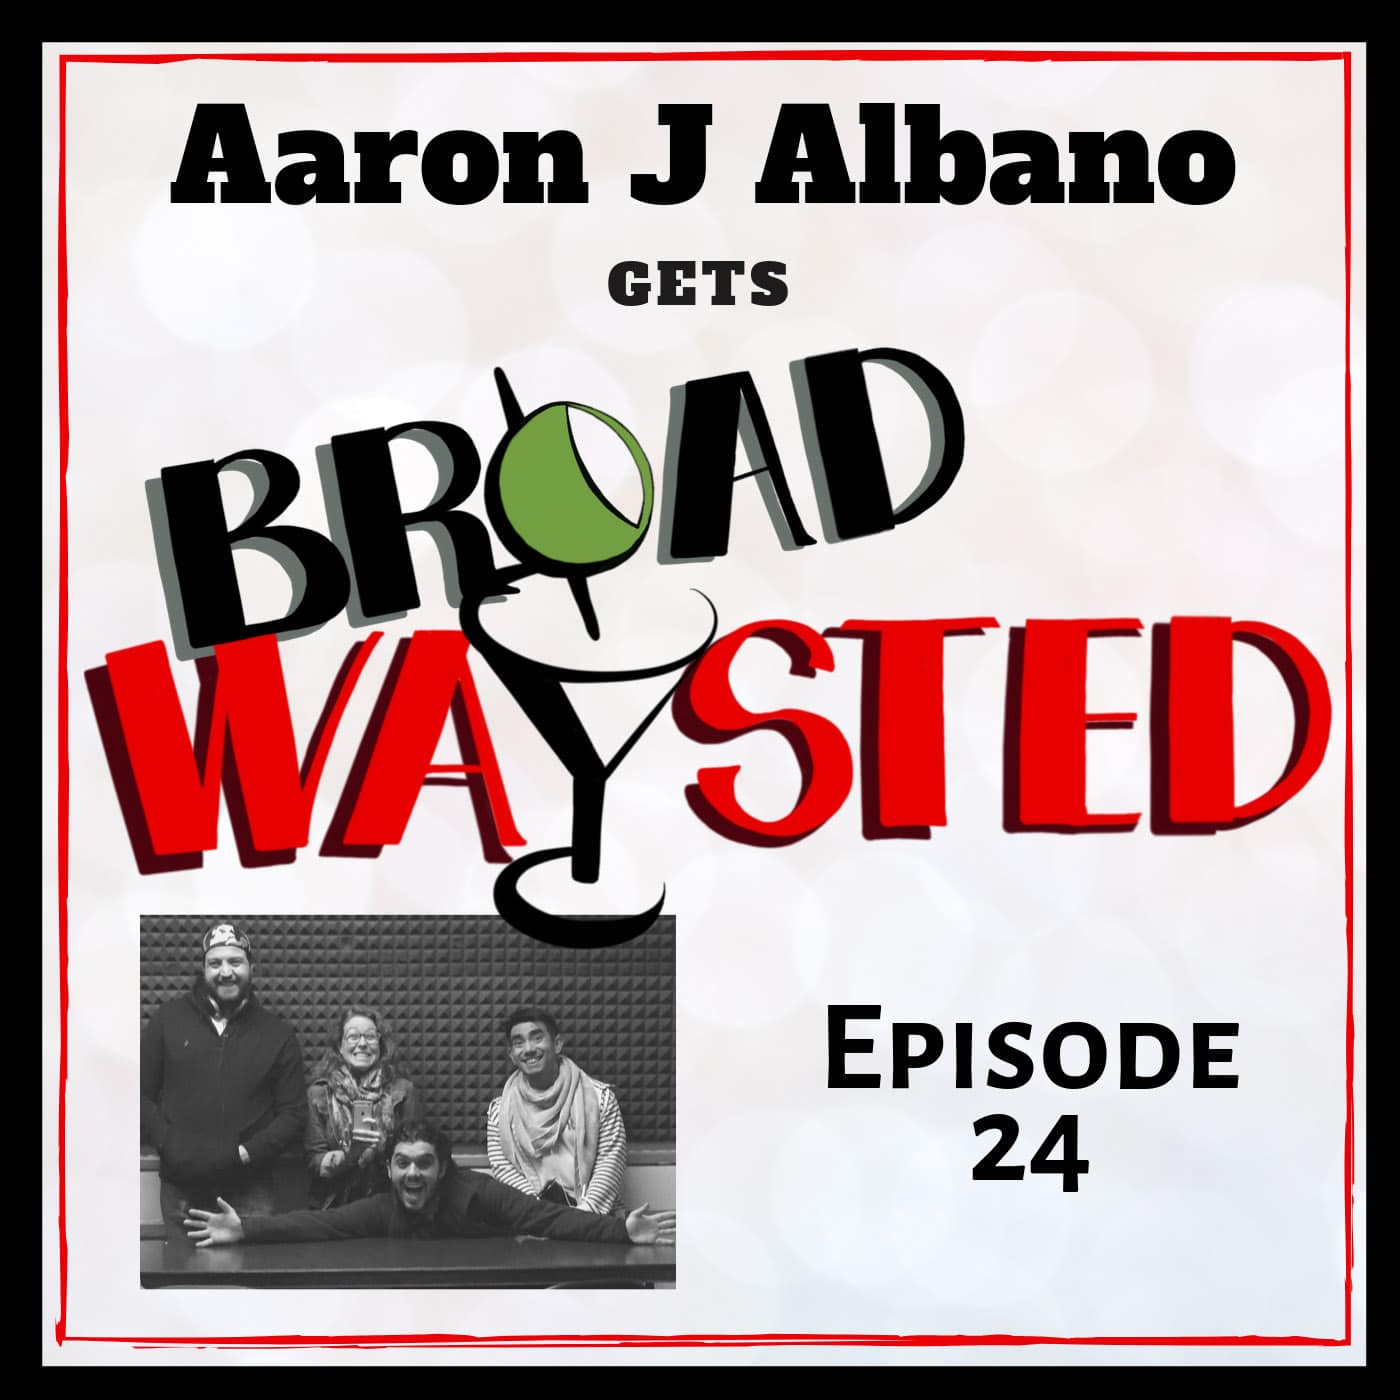 Broadwaysted Ep 24 Aaron J Albano